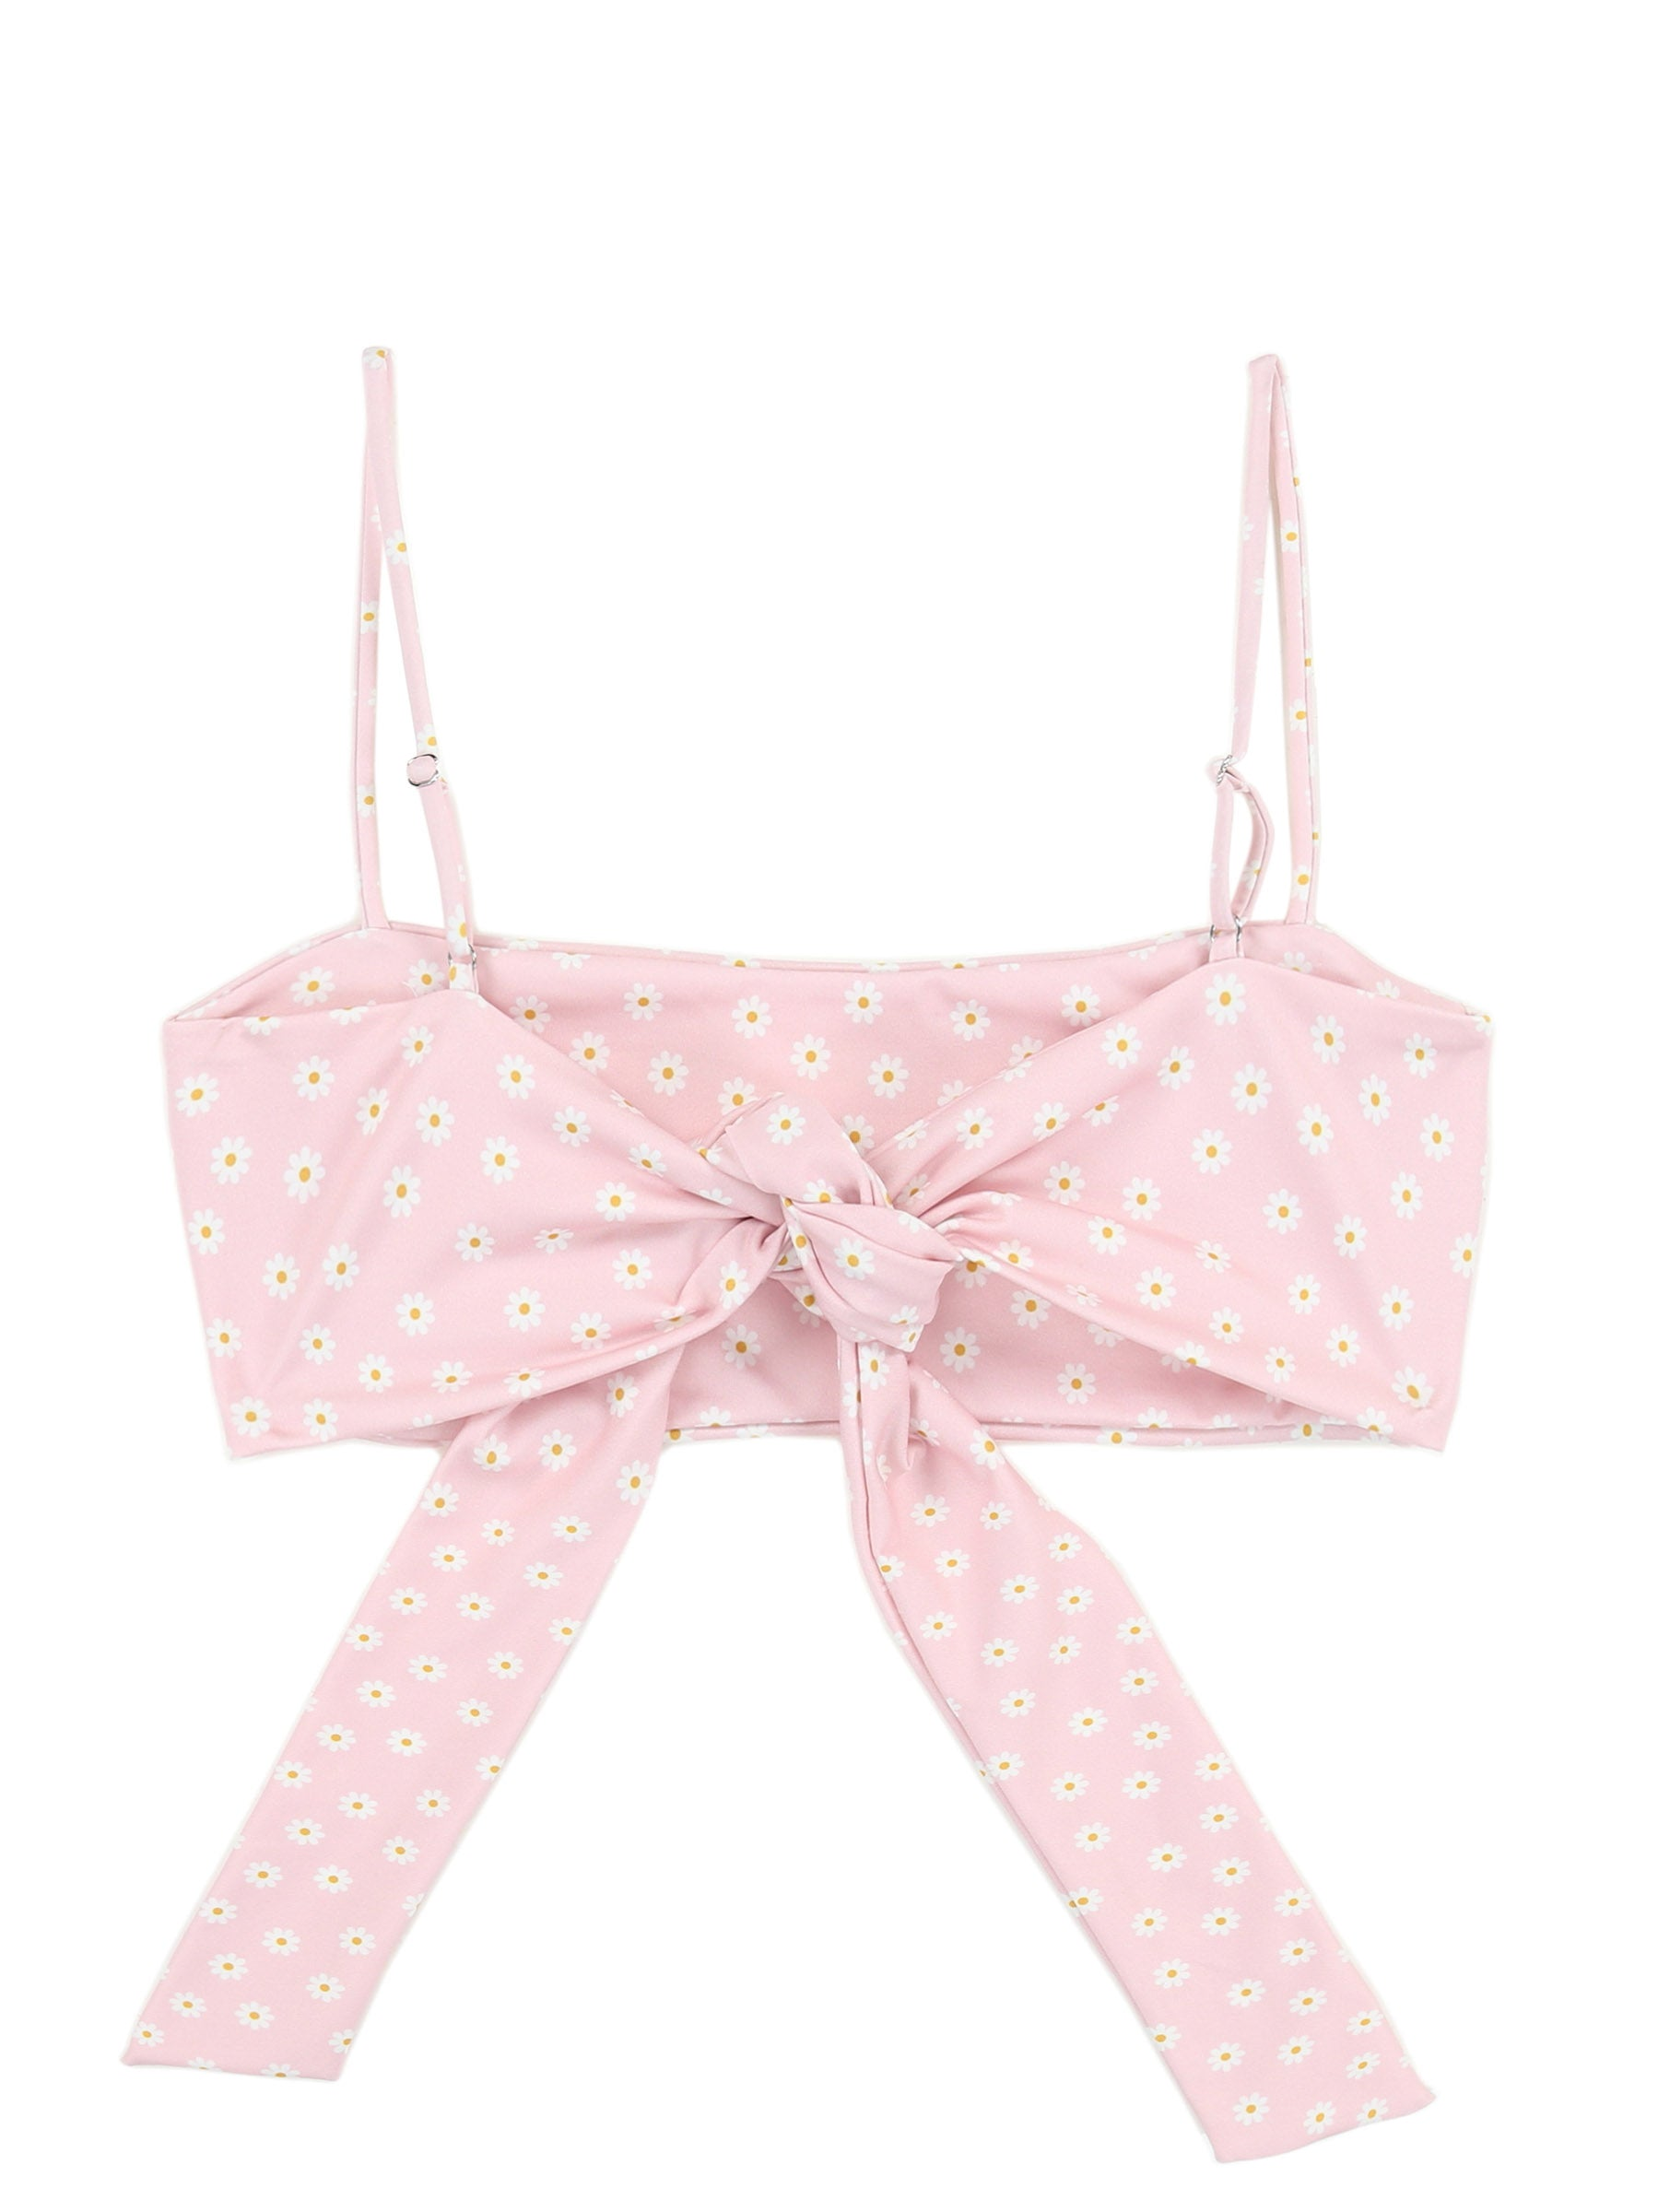 Bandeau Top (Pink Daisy)